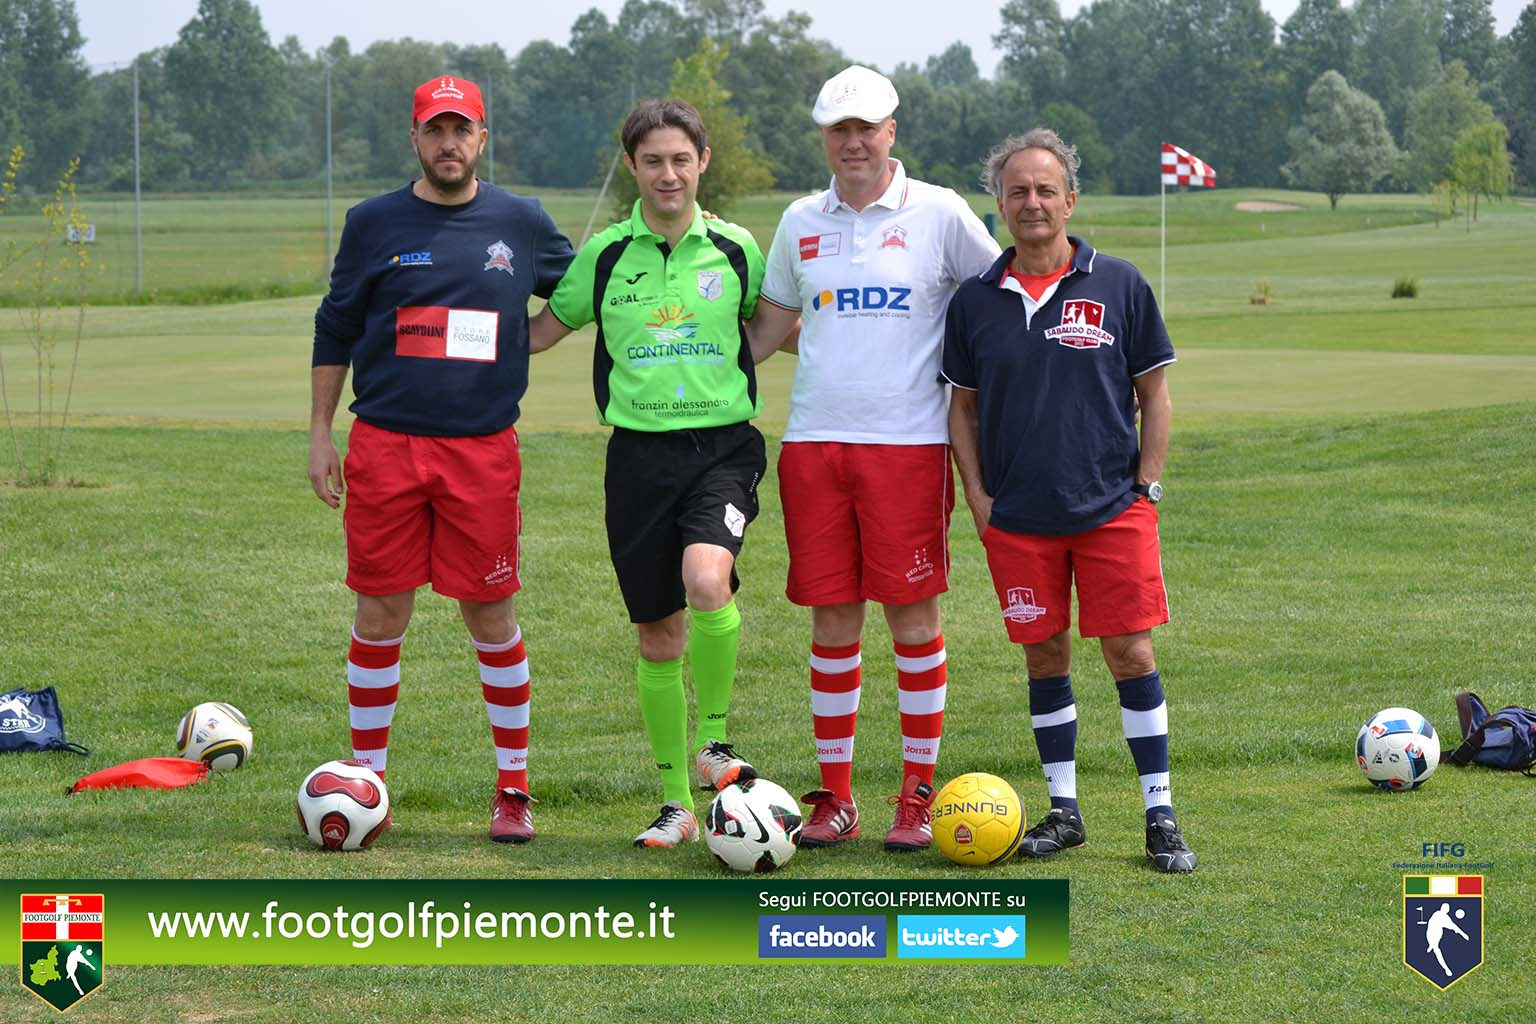 FOTO 9 Regions' Cup Footgolf Piemonte 2016 Golf Città di Asti (At) 30apr16-11